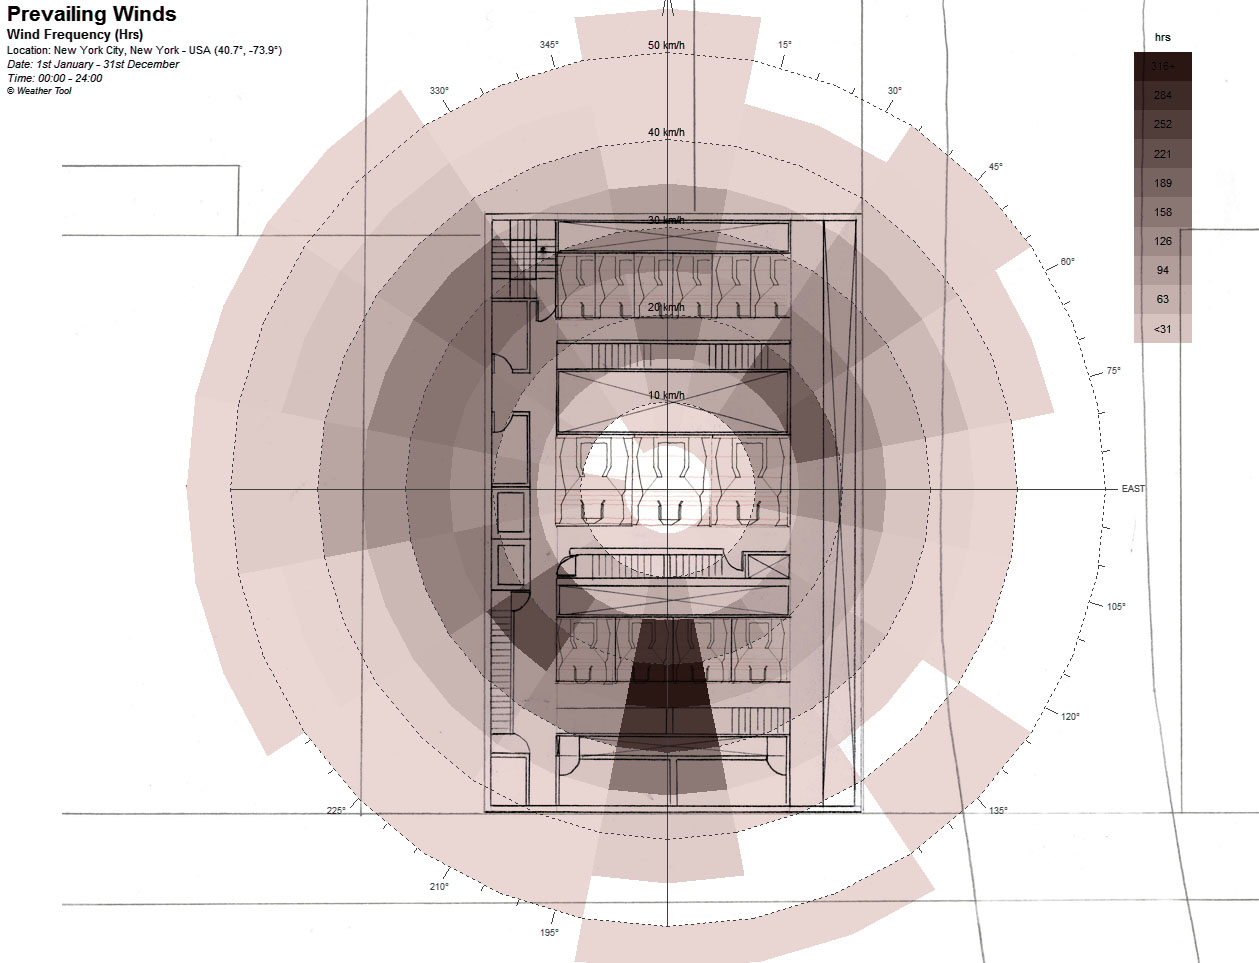 lighting architecture diagram 1990 mazda b2200 radio wiring charchitecture a systematic approach towards